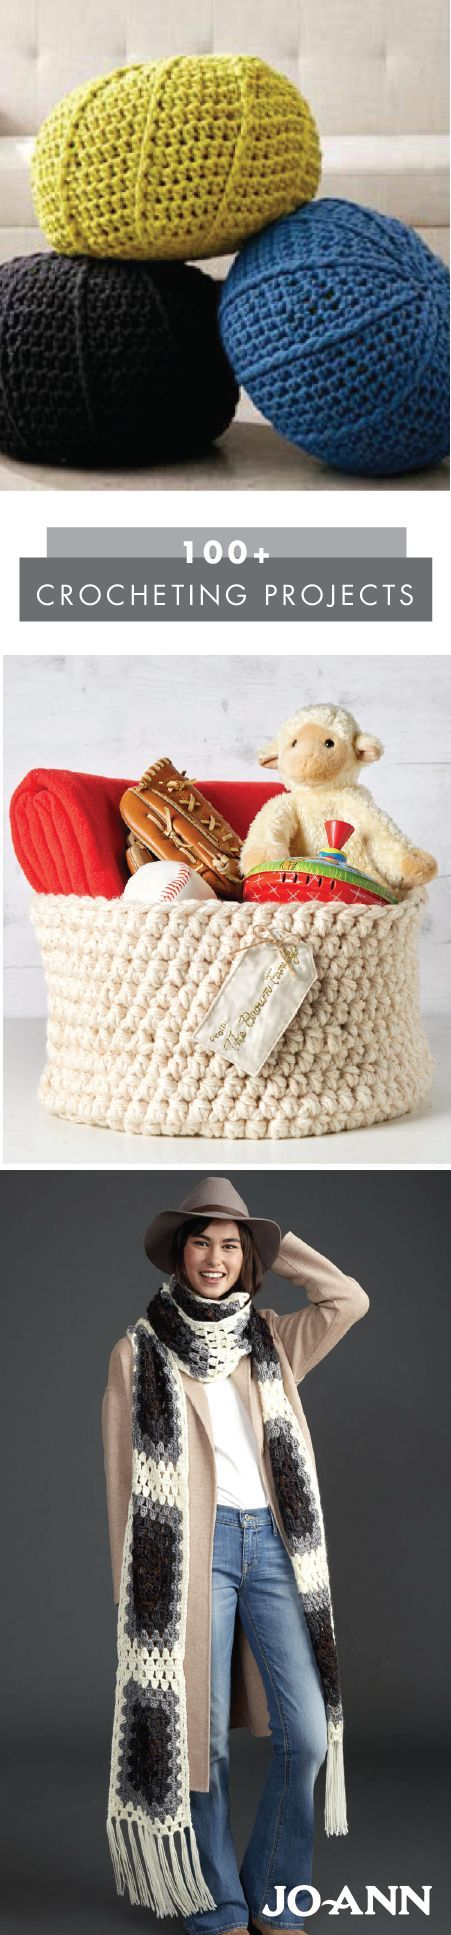 Why buy it when you could make it yourself? This collection of 100+ Crocheting Projects has all the craft tutorials you need to learn how to make everything from home decor to outfit accessories. Intermediate crocheters will especially love how unique each homemade piece is.